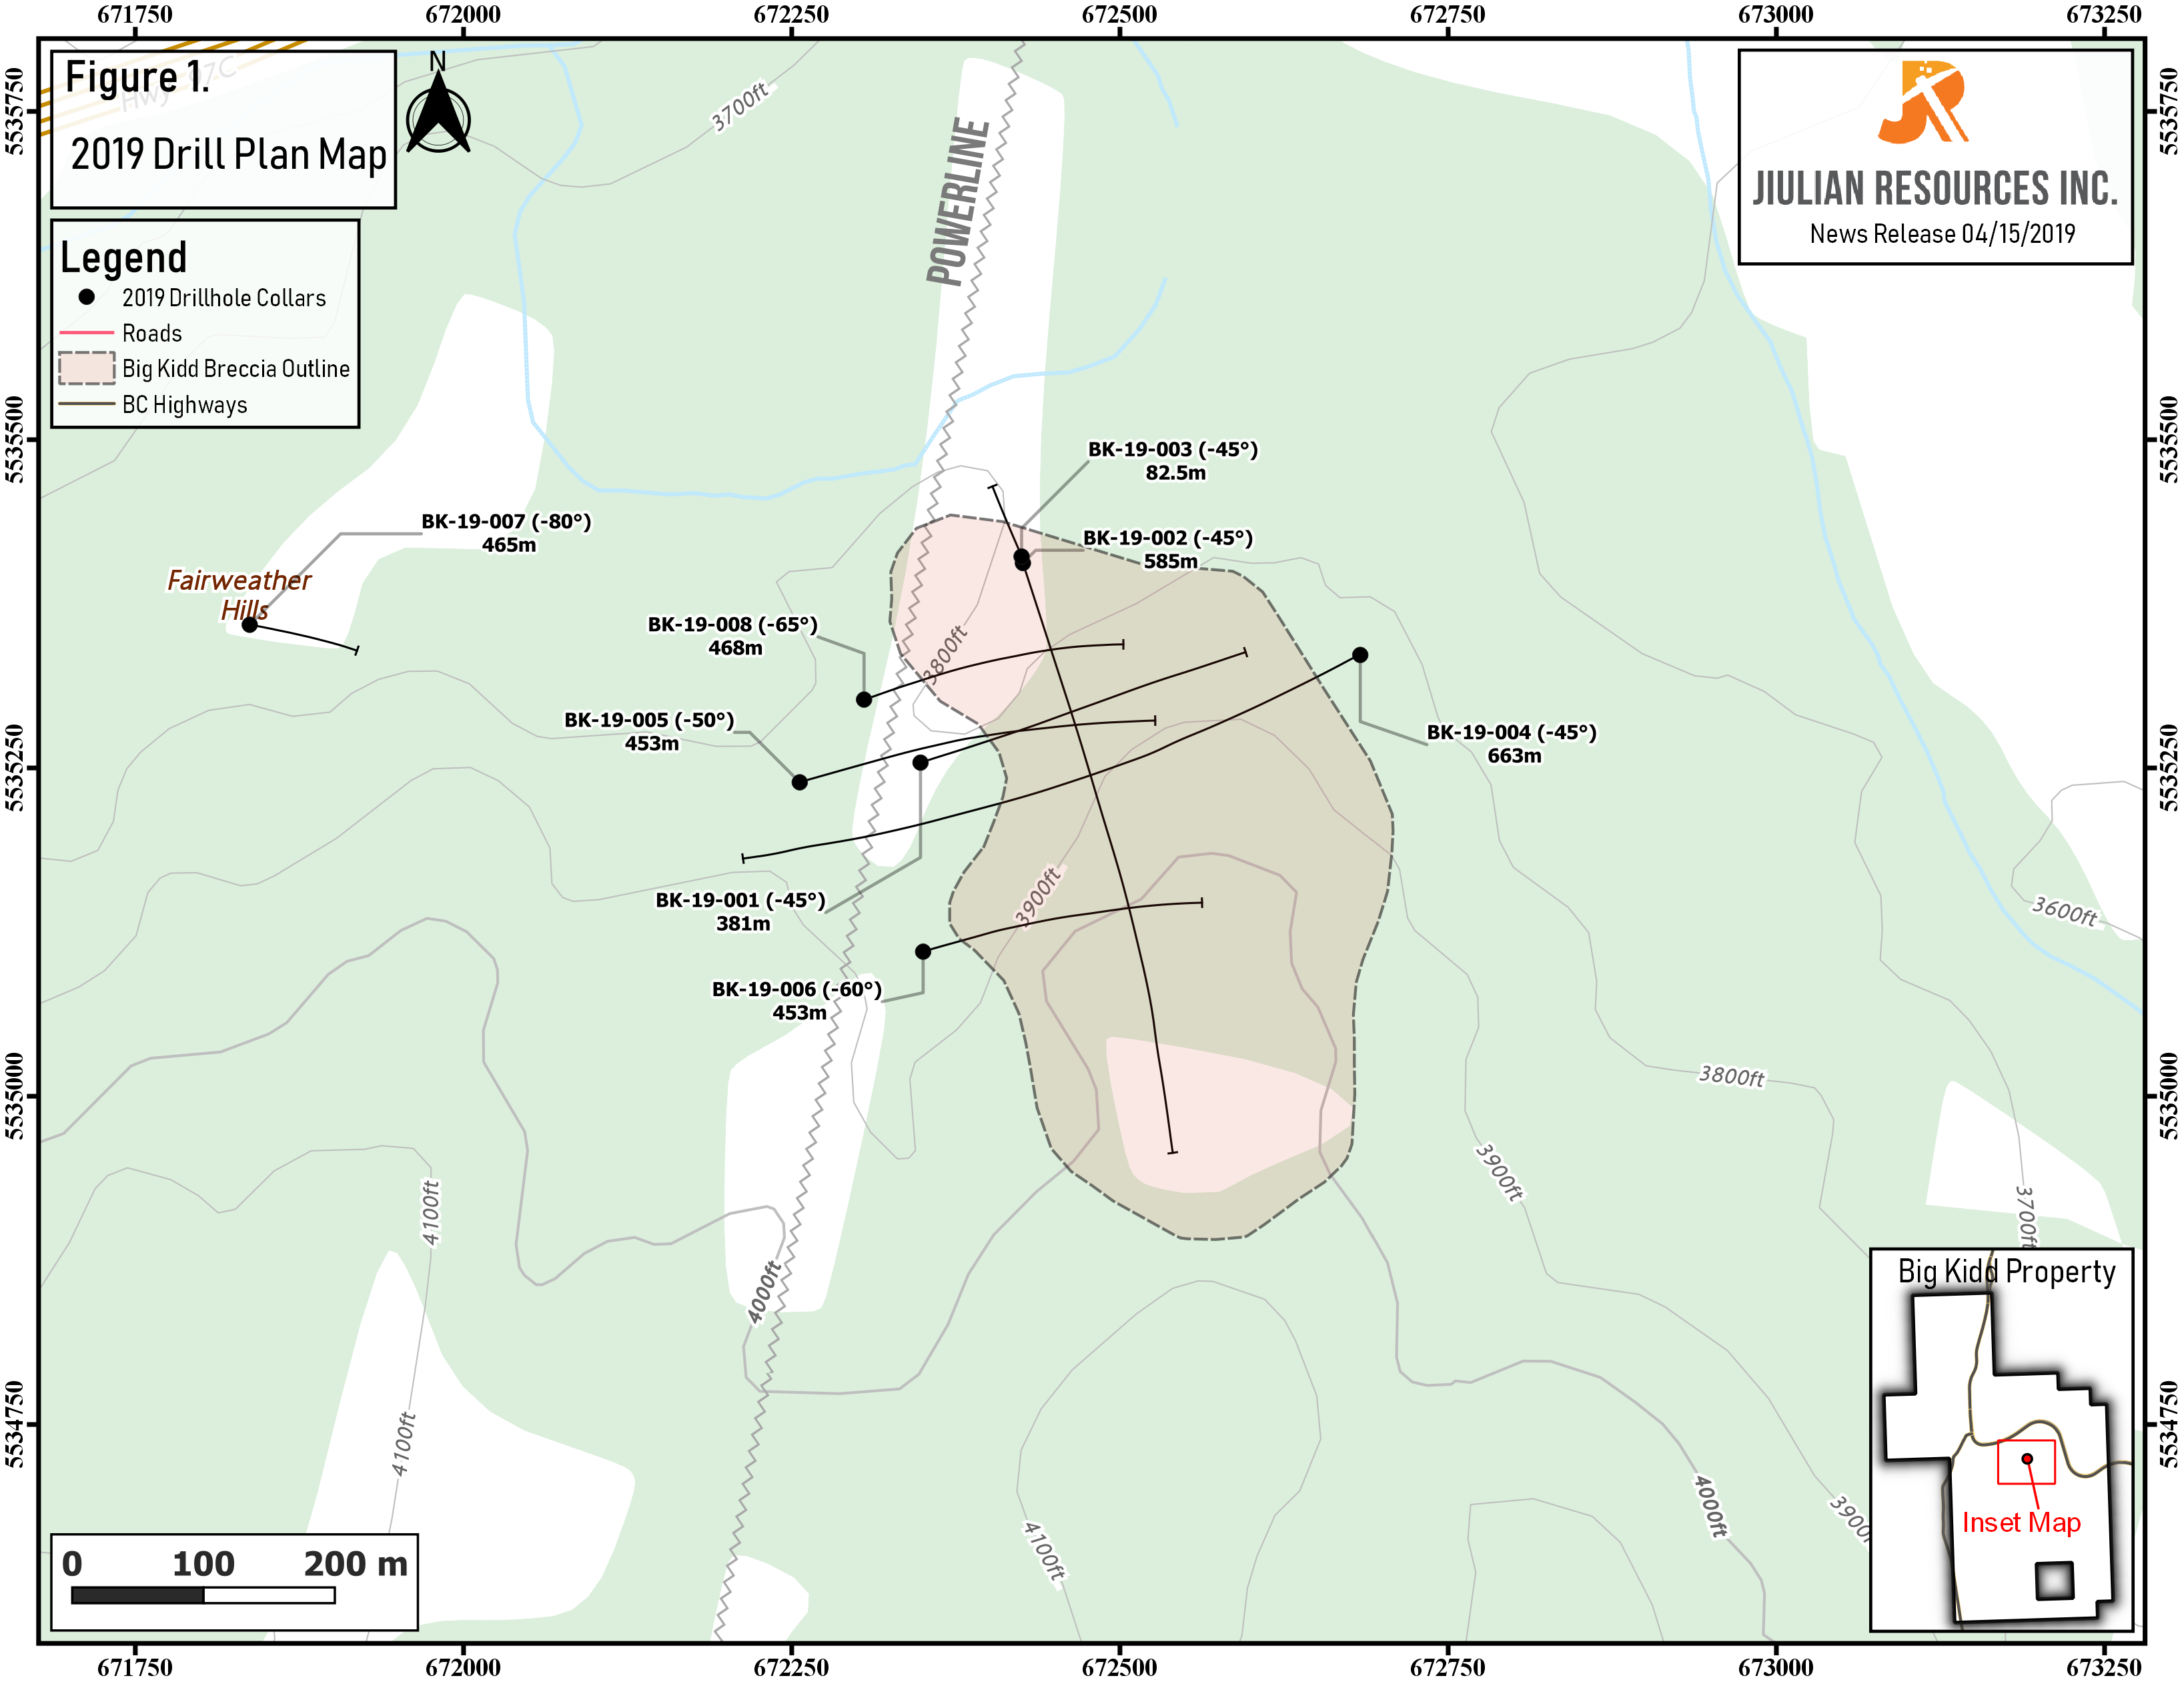 Exploration Highlights Southern British Columbia Gold-Copper Project